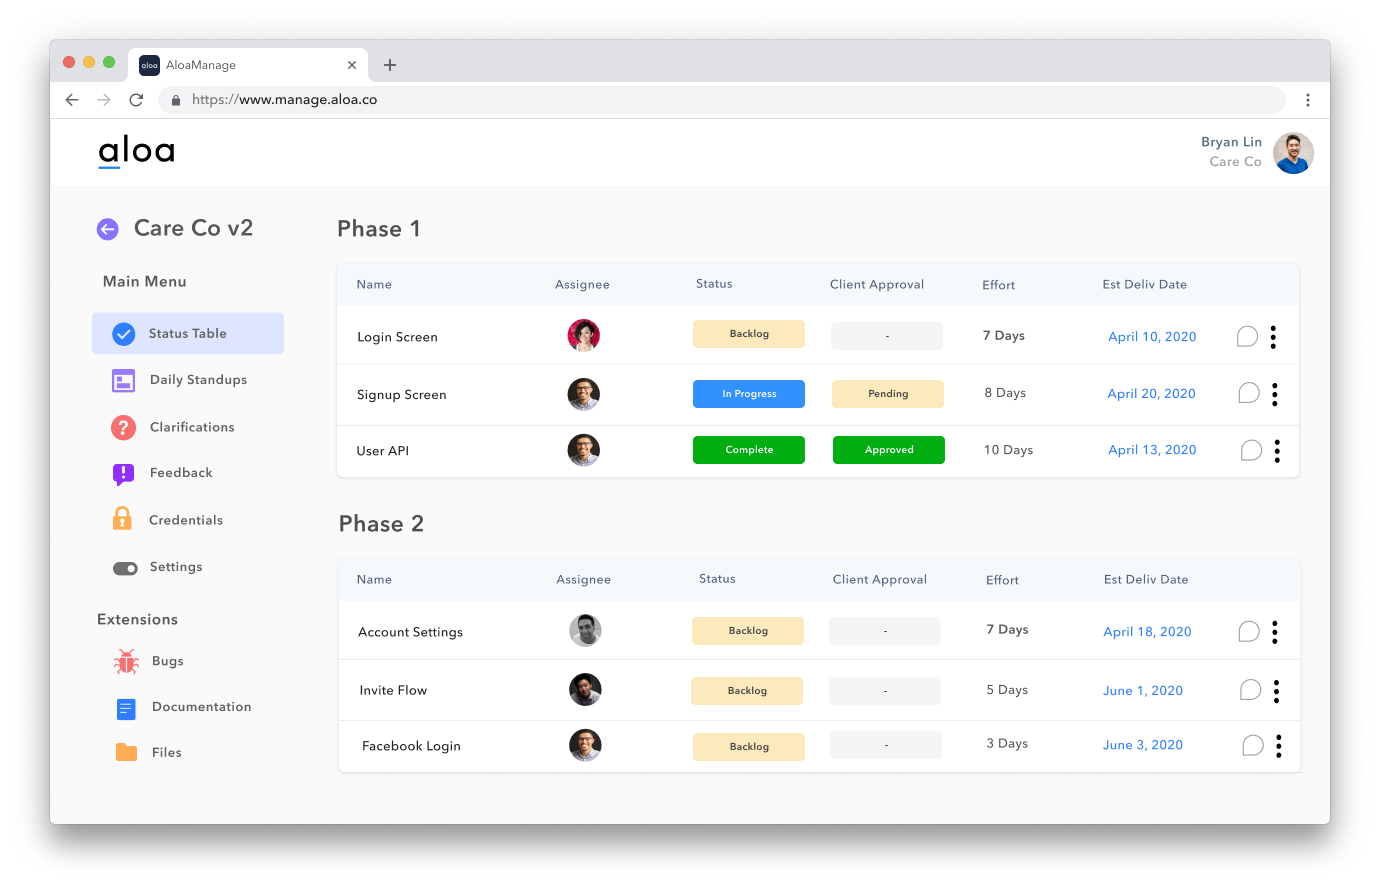 The status table shows a high-level client-facing view of the project.